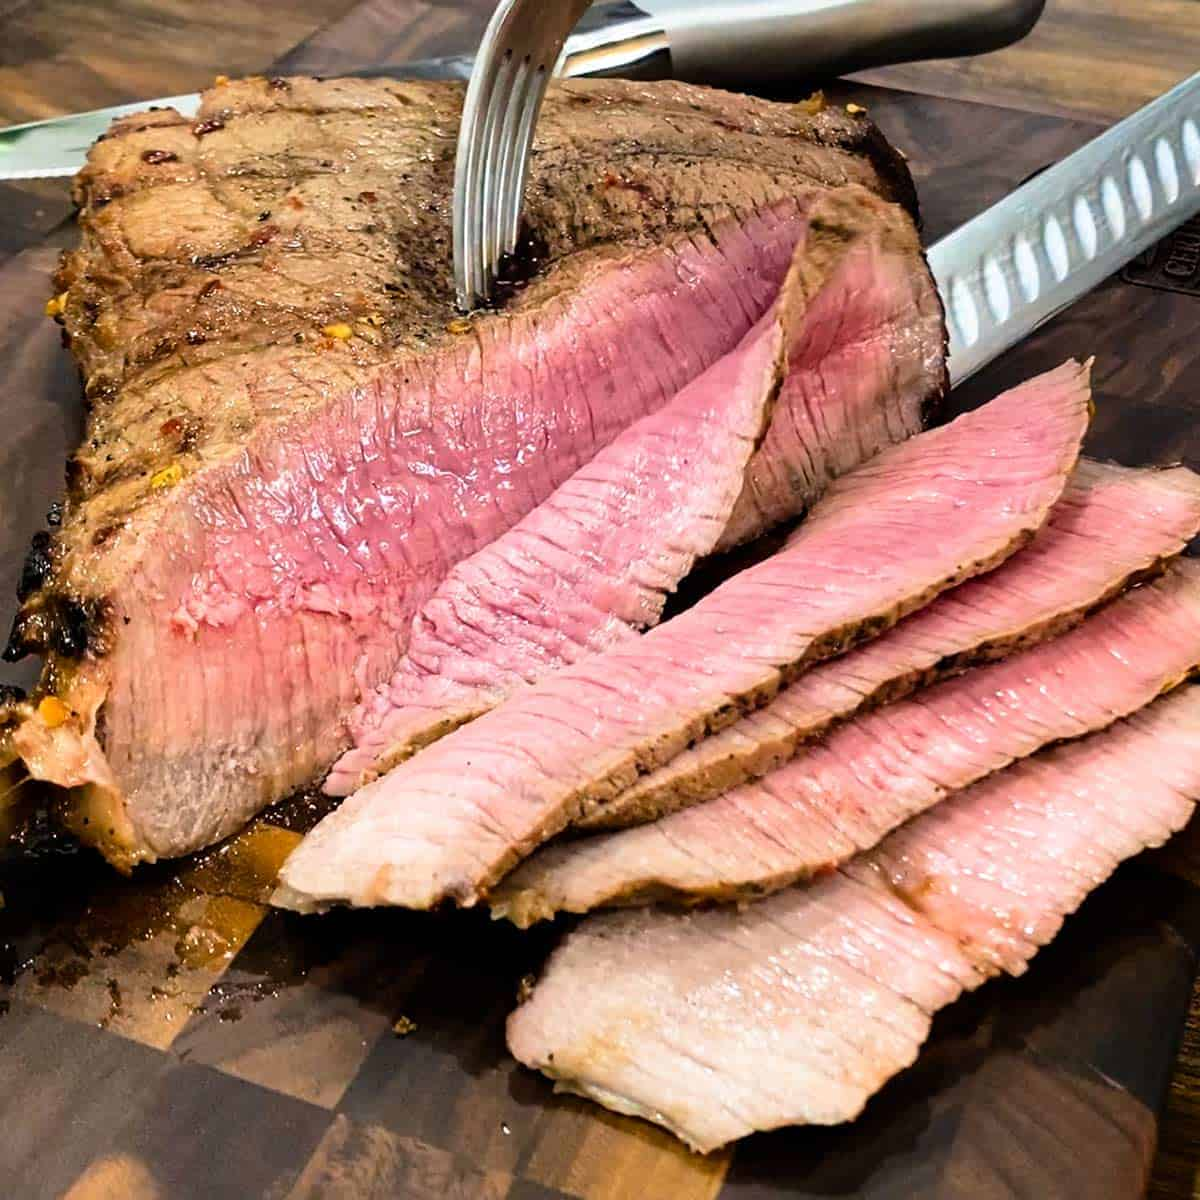 Slicing a grilled london broil on a cutting board with a fork and knife